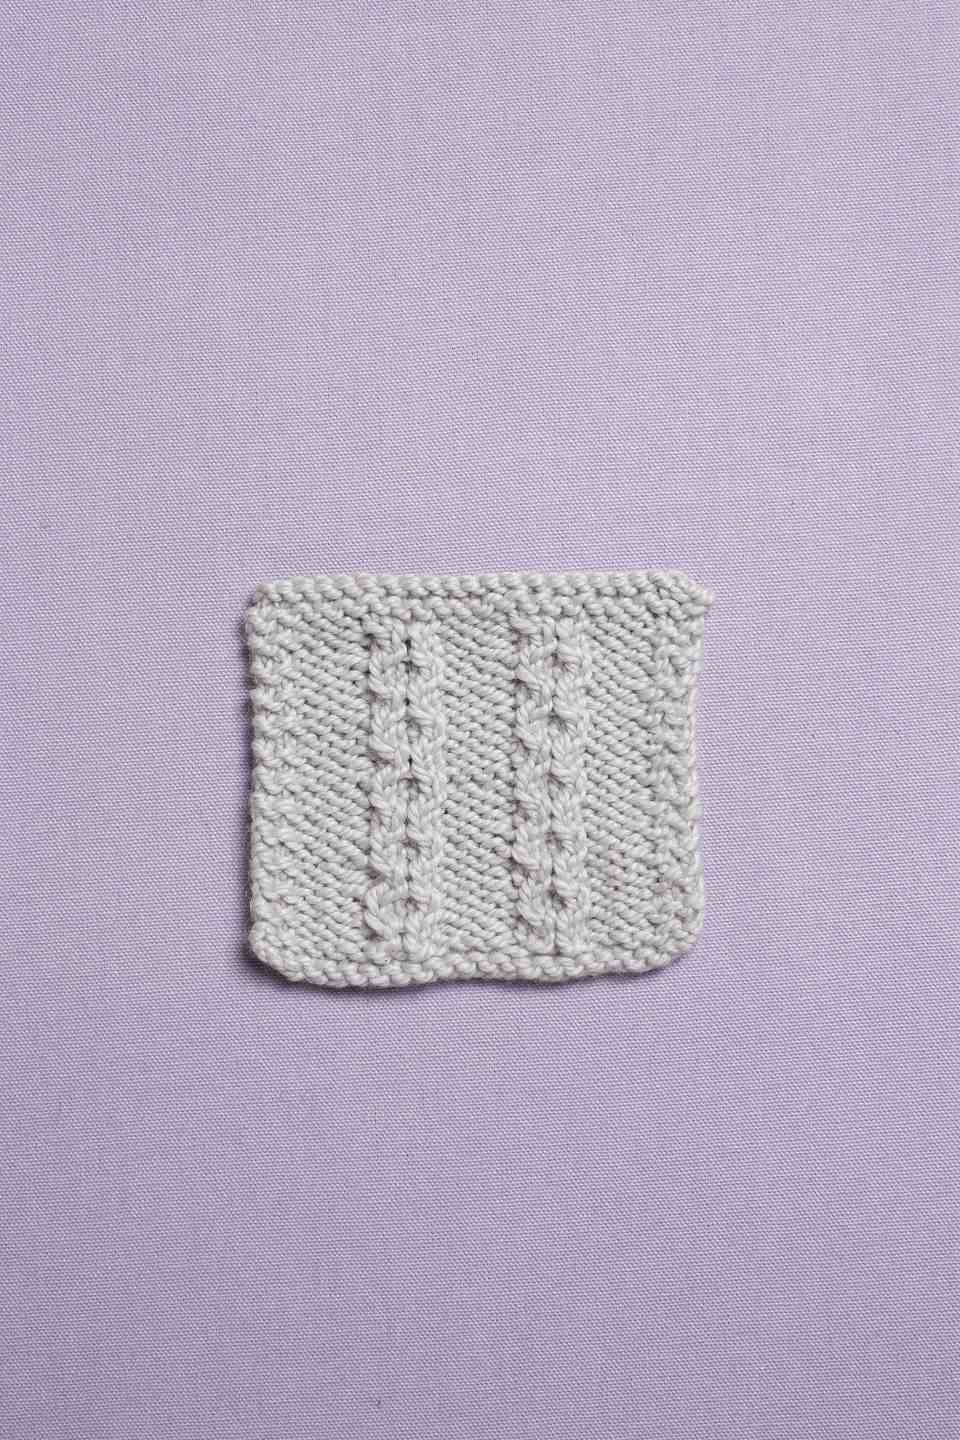 Little pearls knitting stitch pattern from knitting all around stitch dictionary